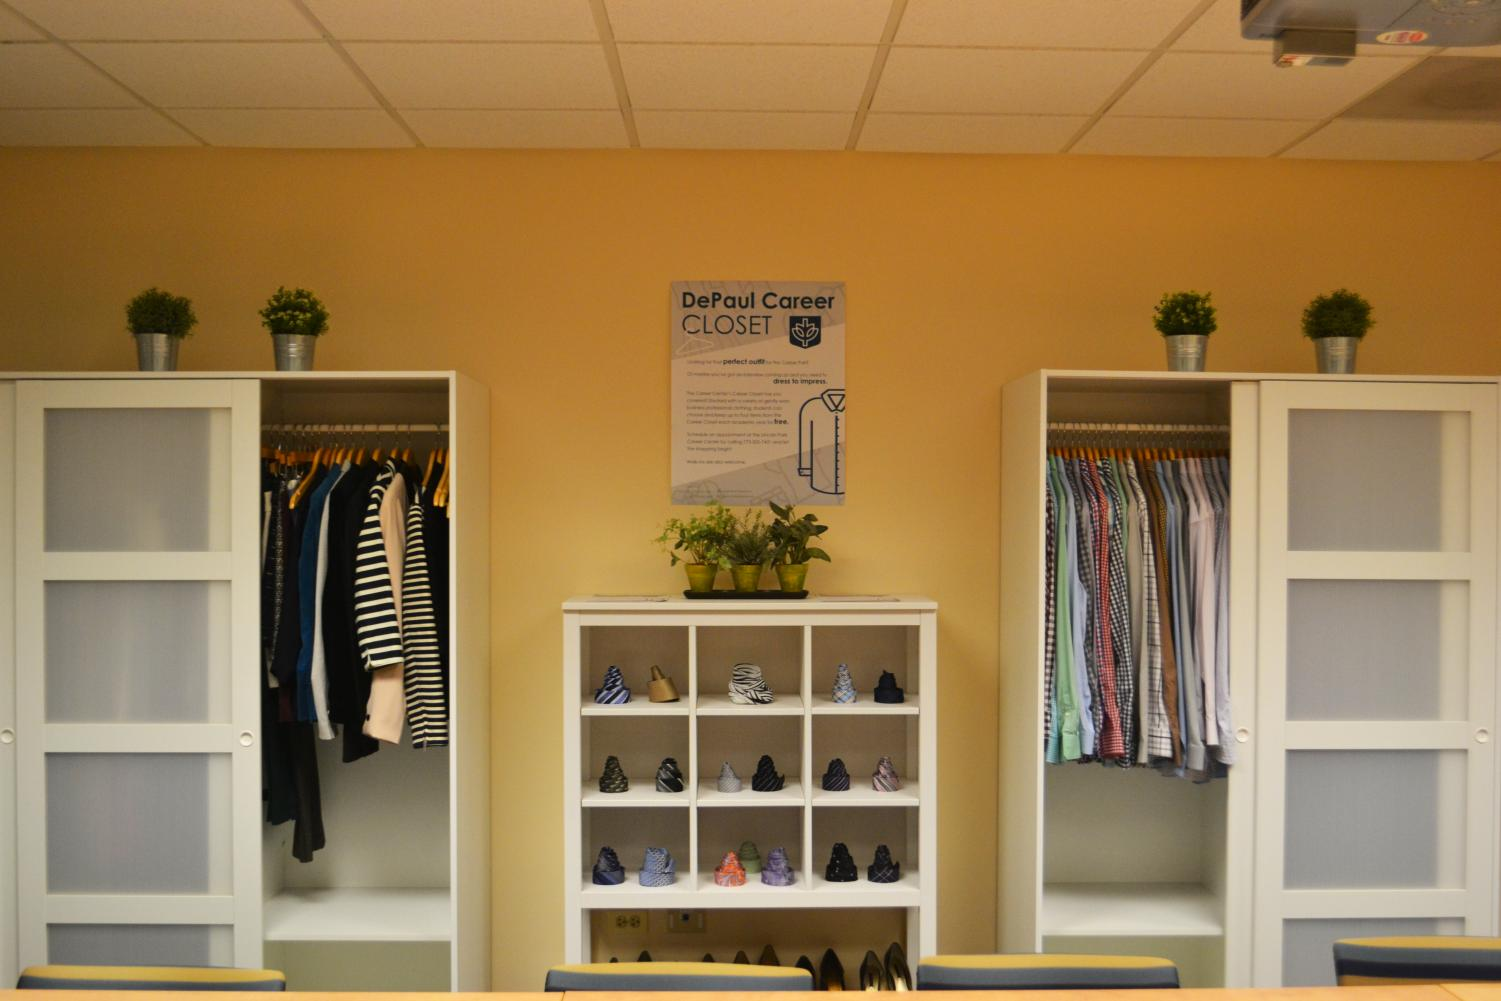 The Career Center opened a new career closet features both women's and mens professional clothing and accessories donated by students and others. (Timothy Duke | The Depaulia)